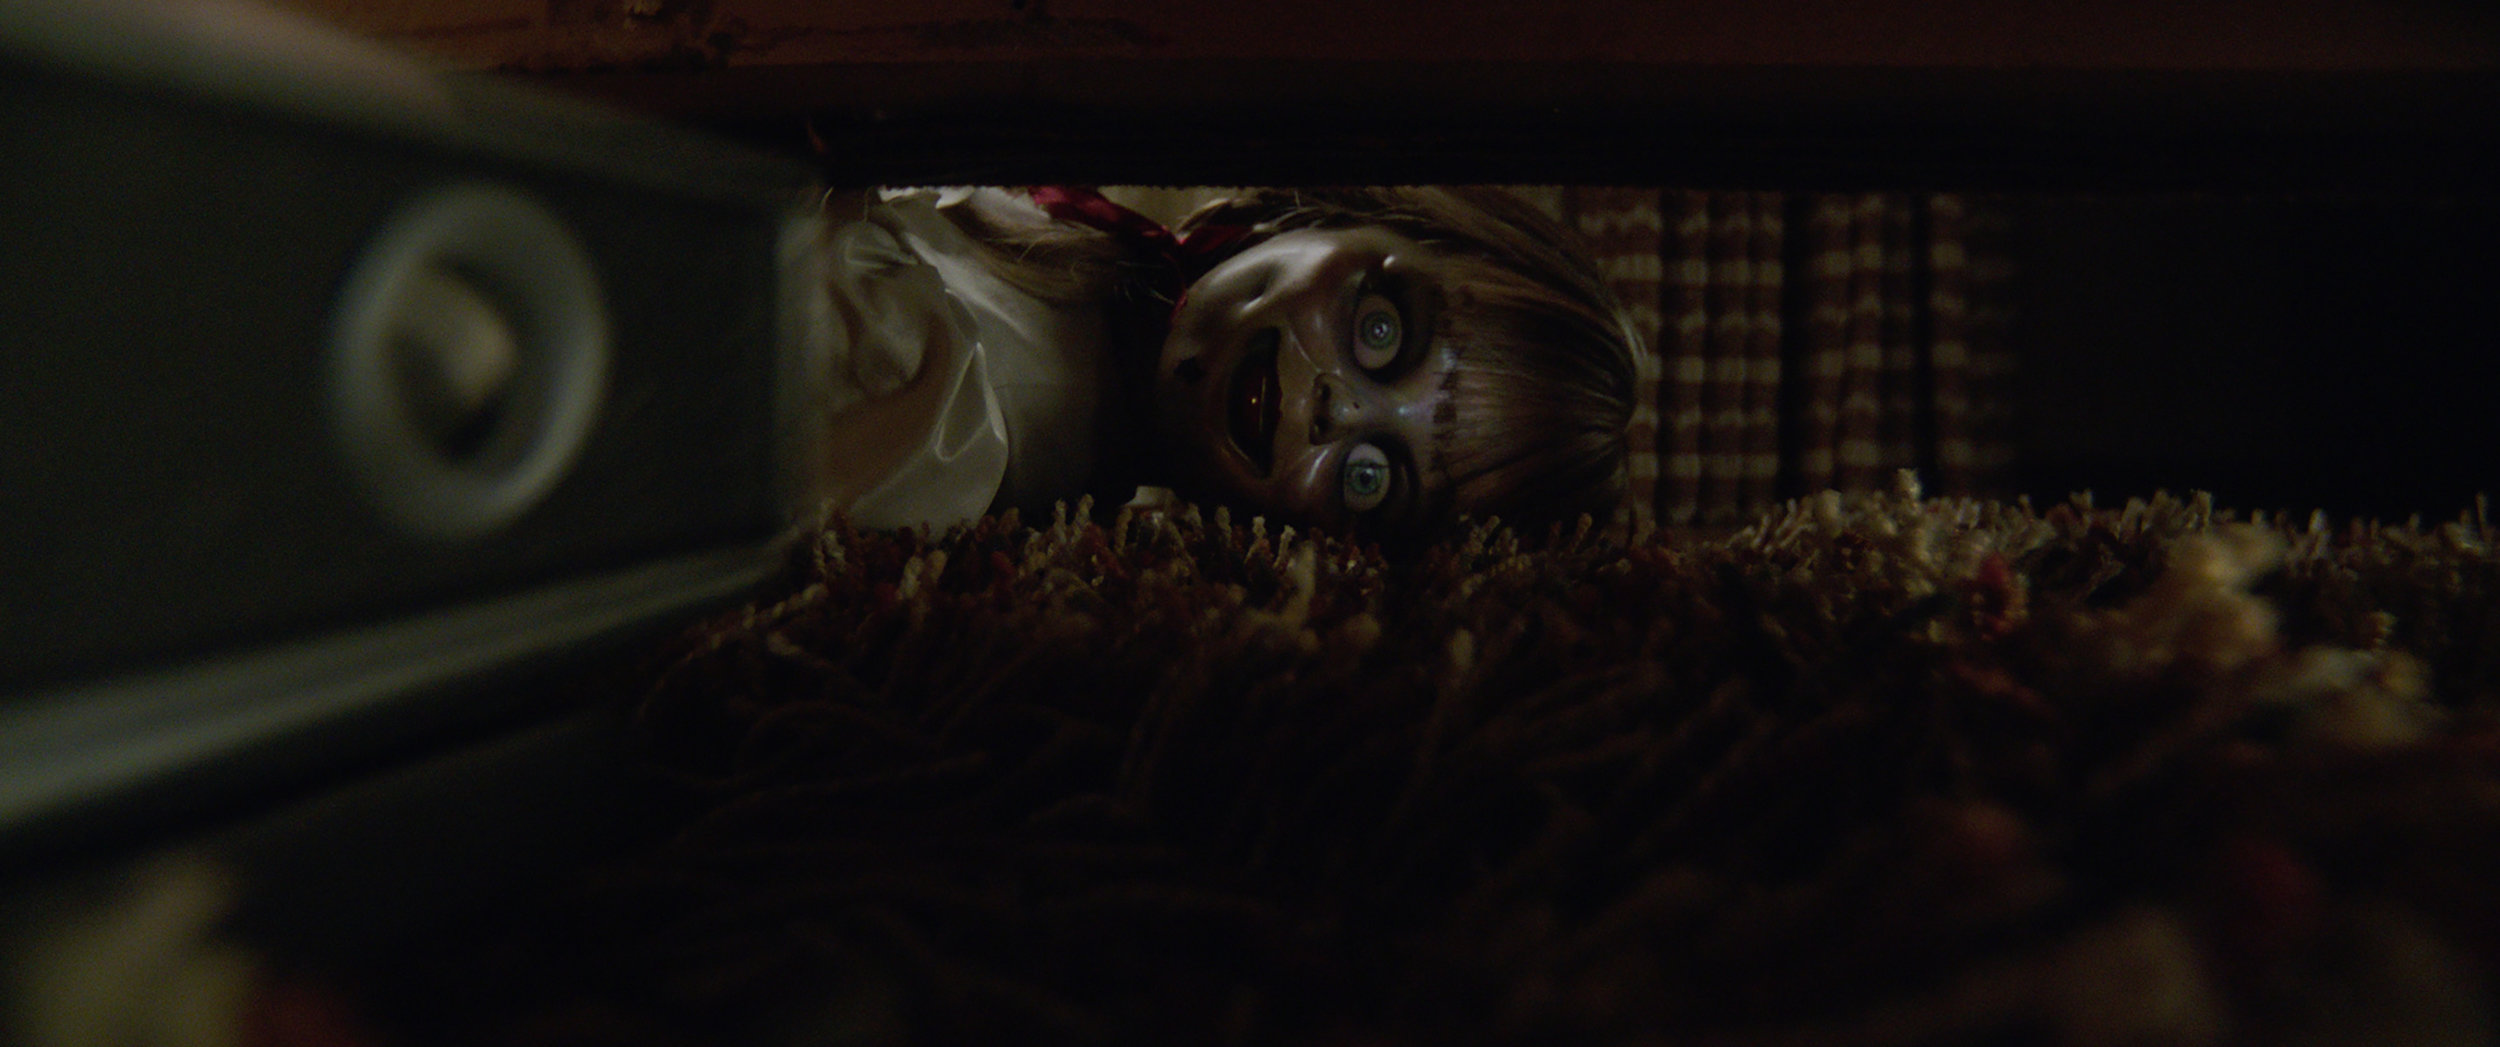 annabelle-is-back-and-as-eerie-as-ever.jpeg